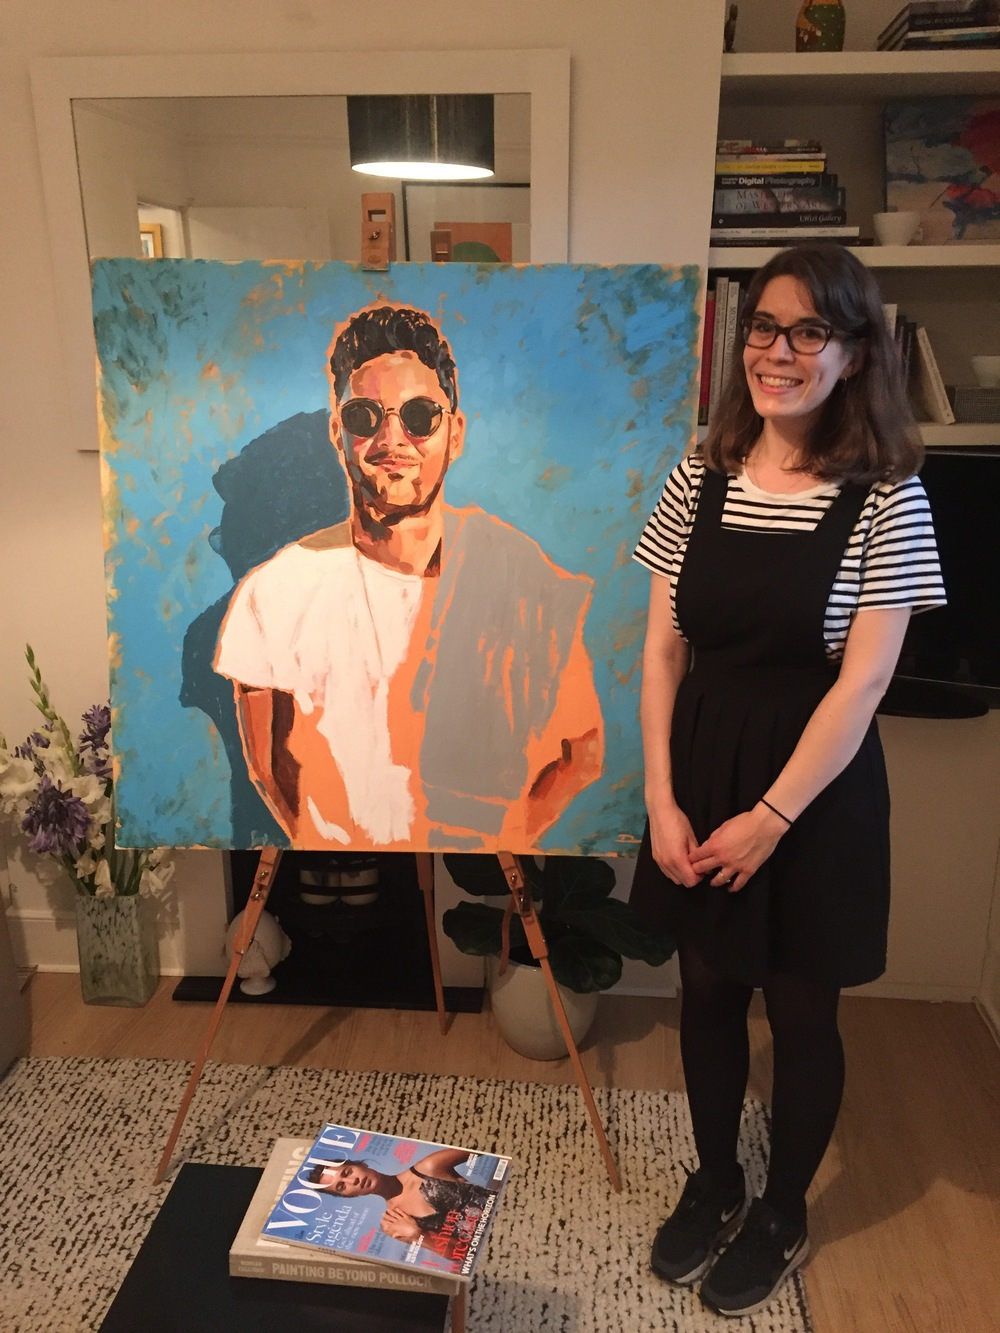 A lovely picture of Nikki in front of her gift painting